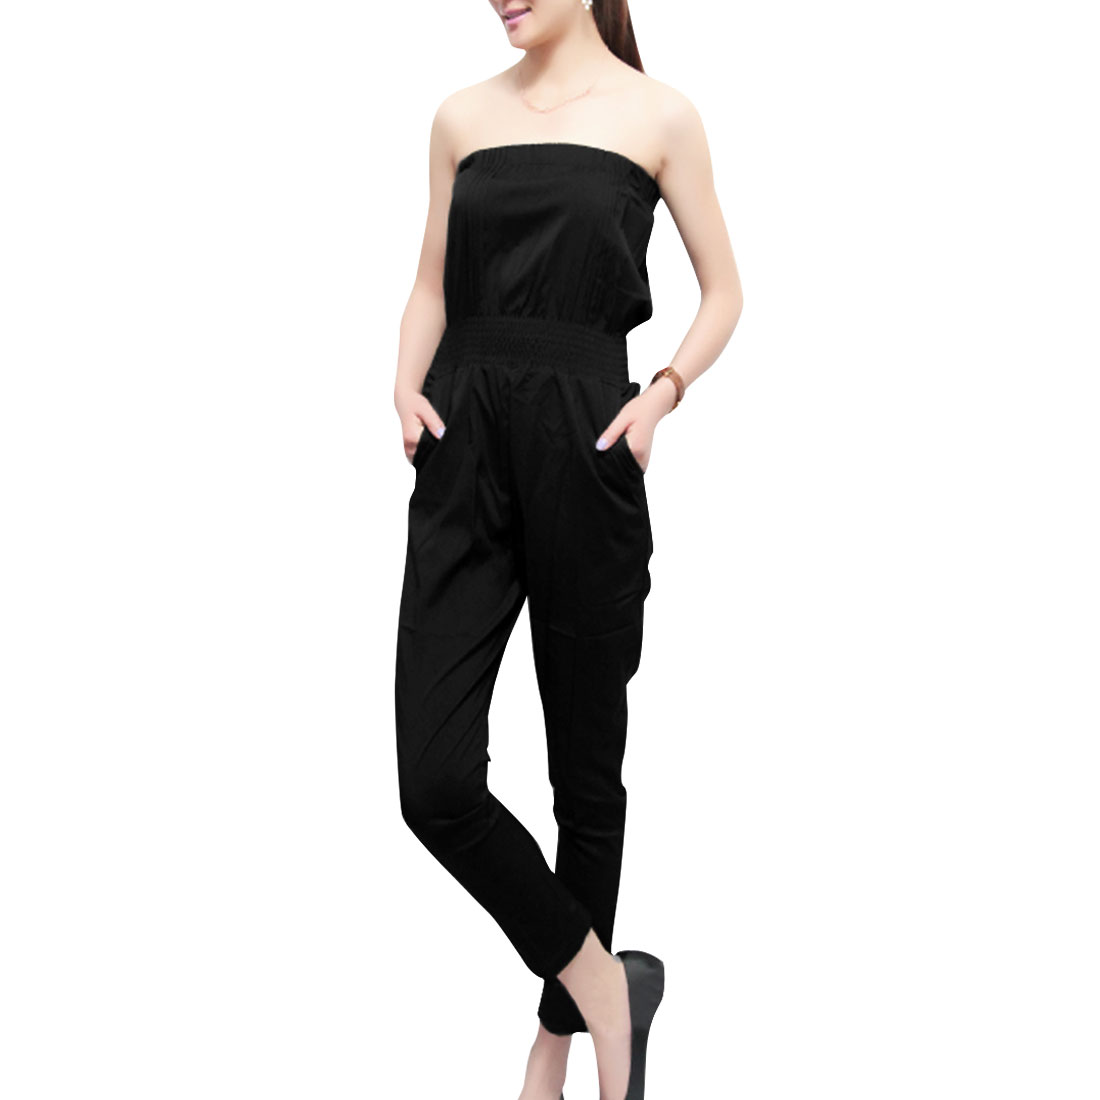 Lady Black Strapless Off-Shoulder Elastic Waist Slant Pocket Jumpsuit XS